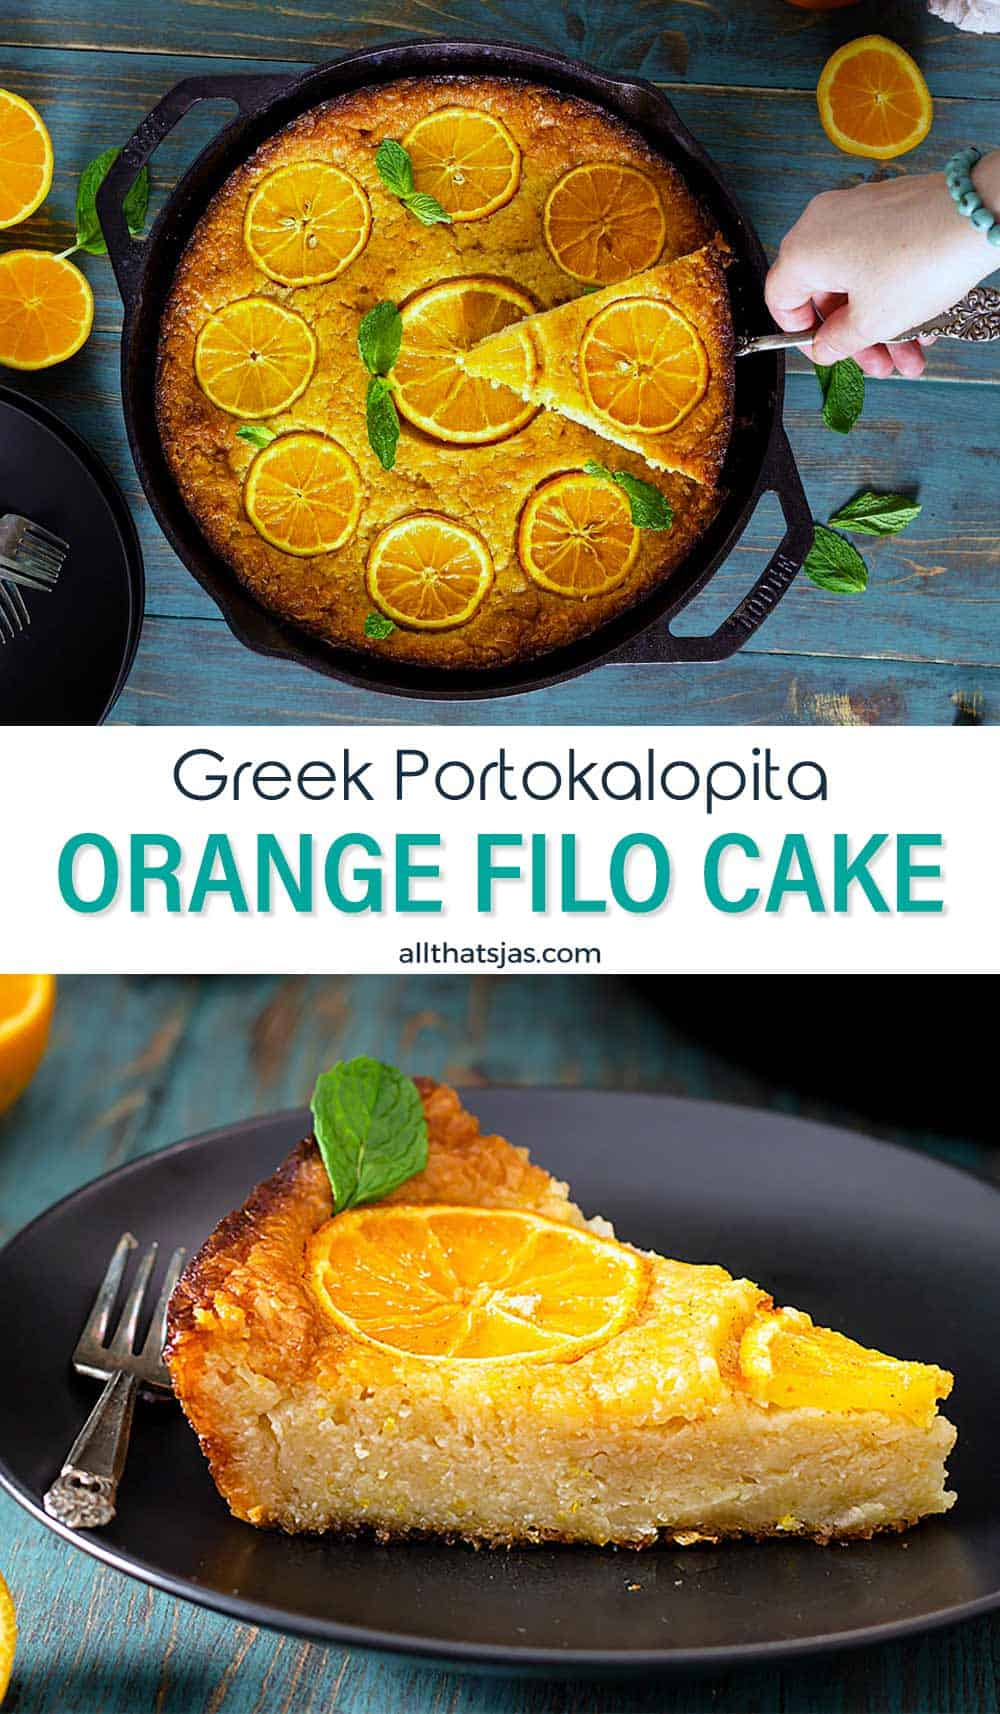 Two photo mage of the Greek cake with oranges and pastry with text overlay.